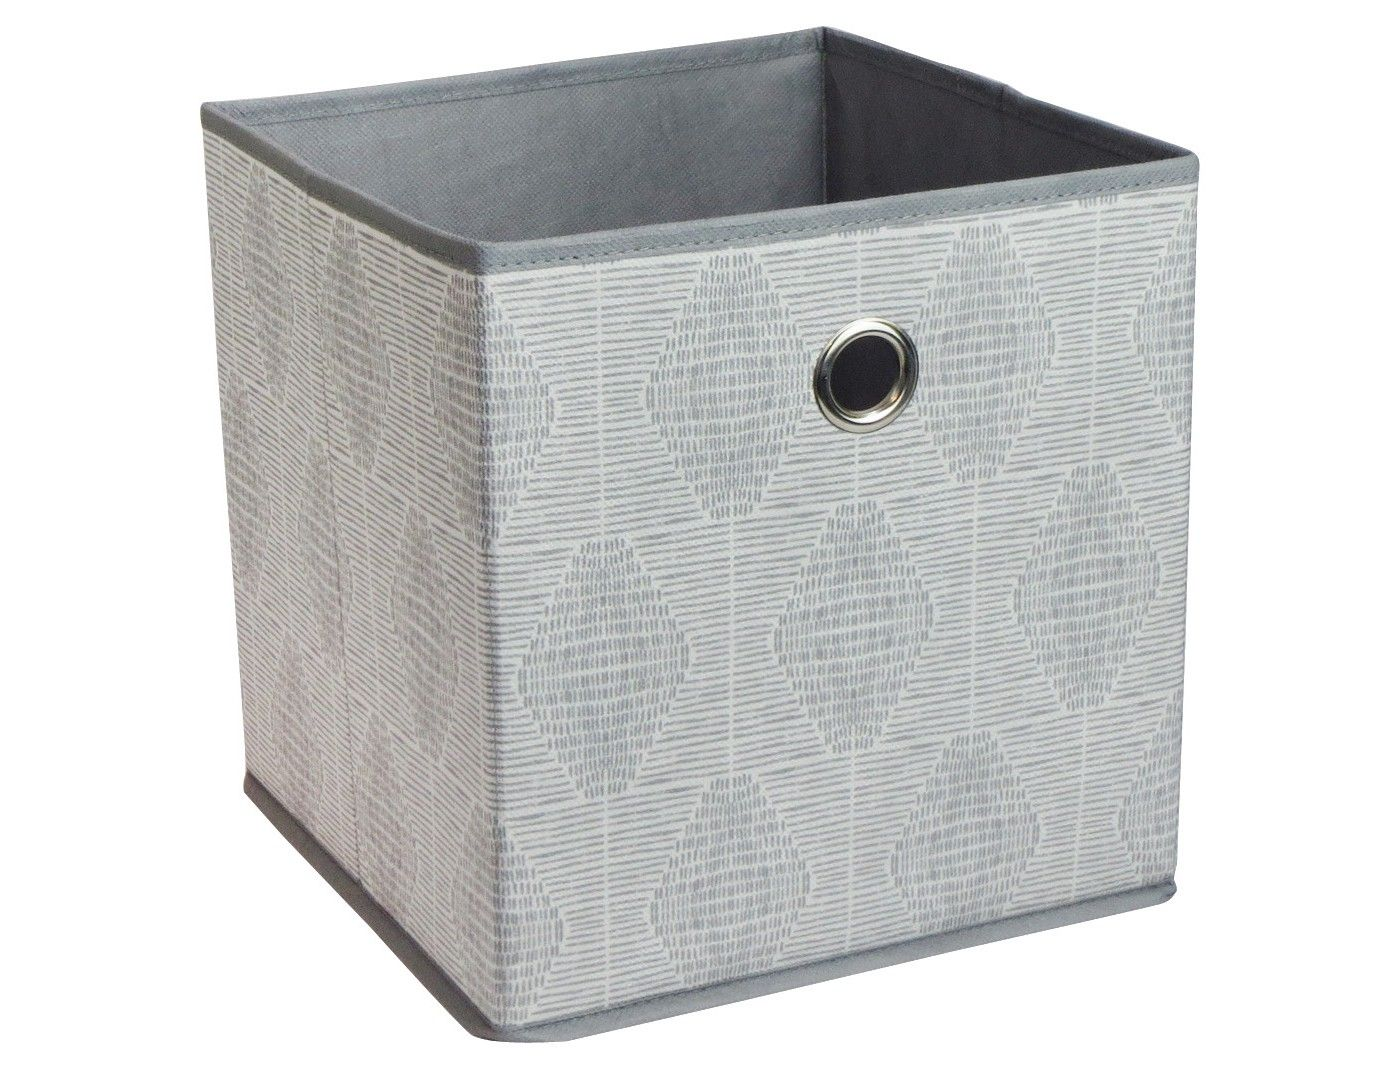 Fabric Cube Storage Bin 11 Room Essentials Cube Storage Bins Cube Storage Room Essentials